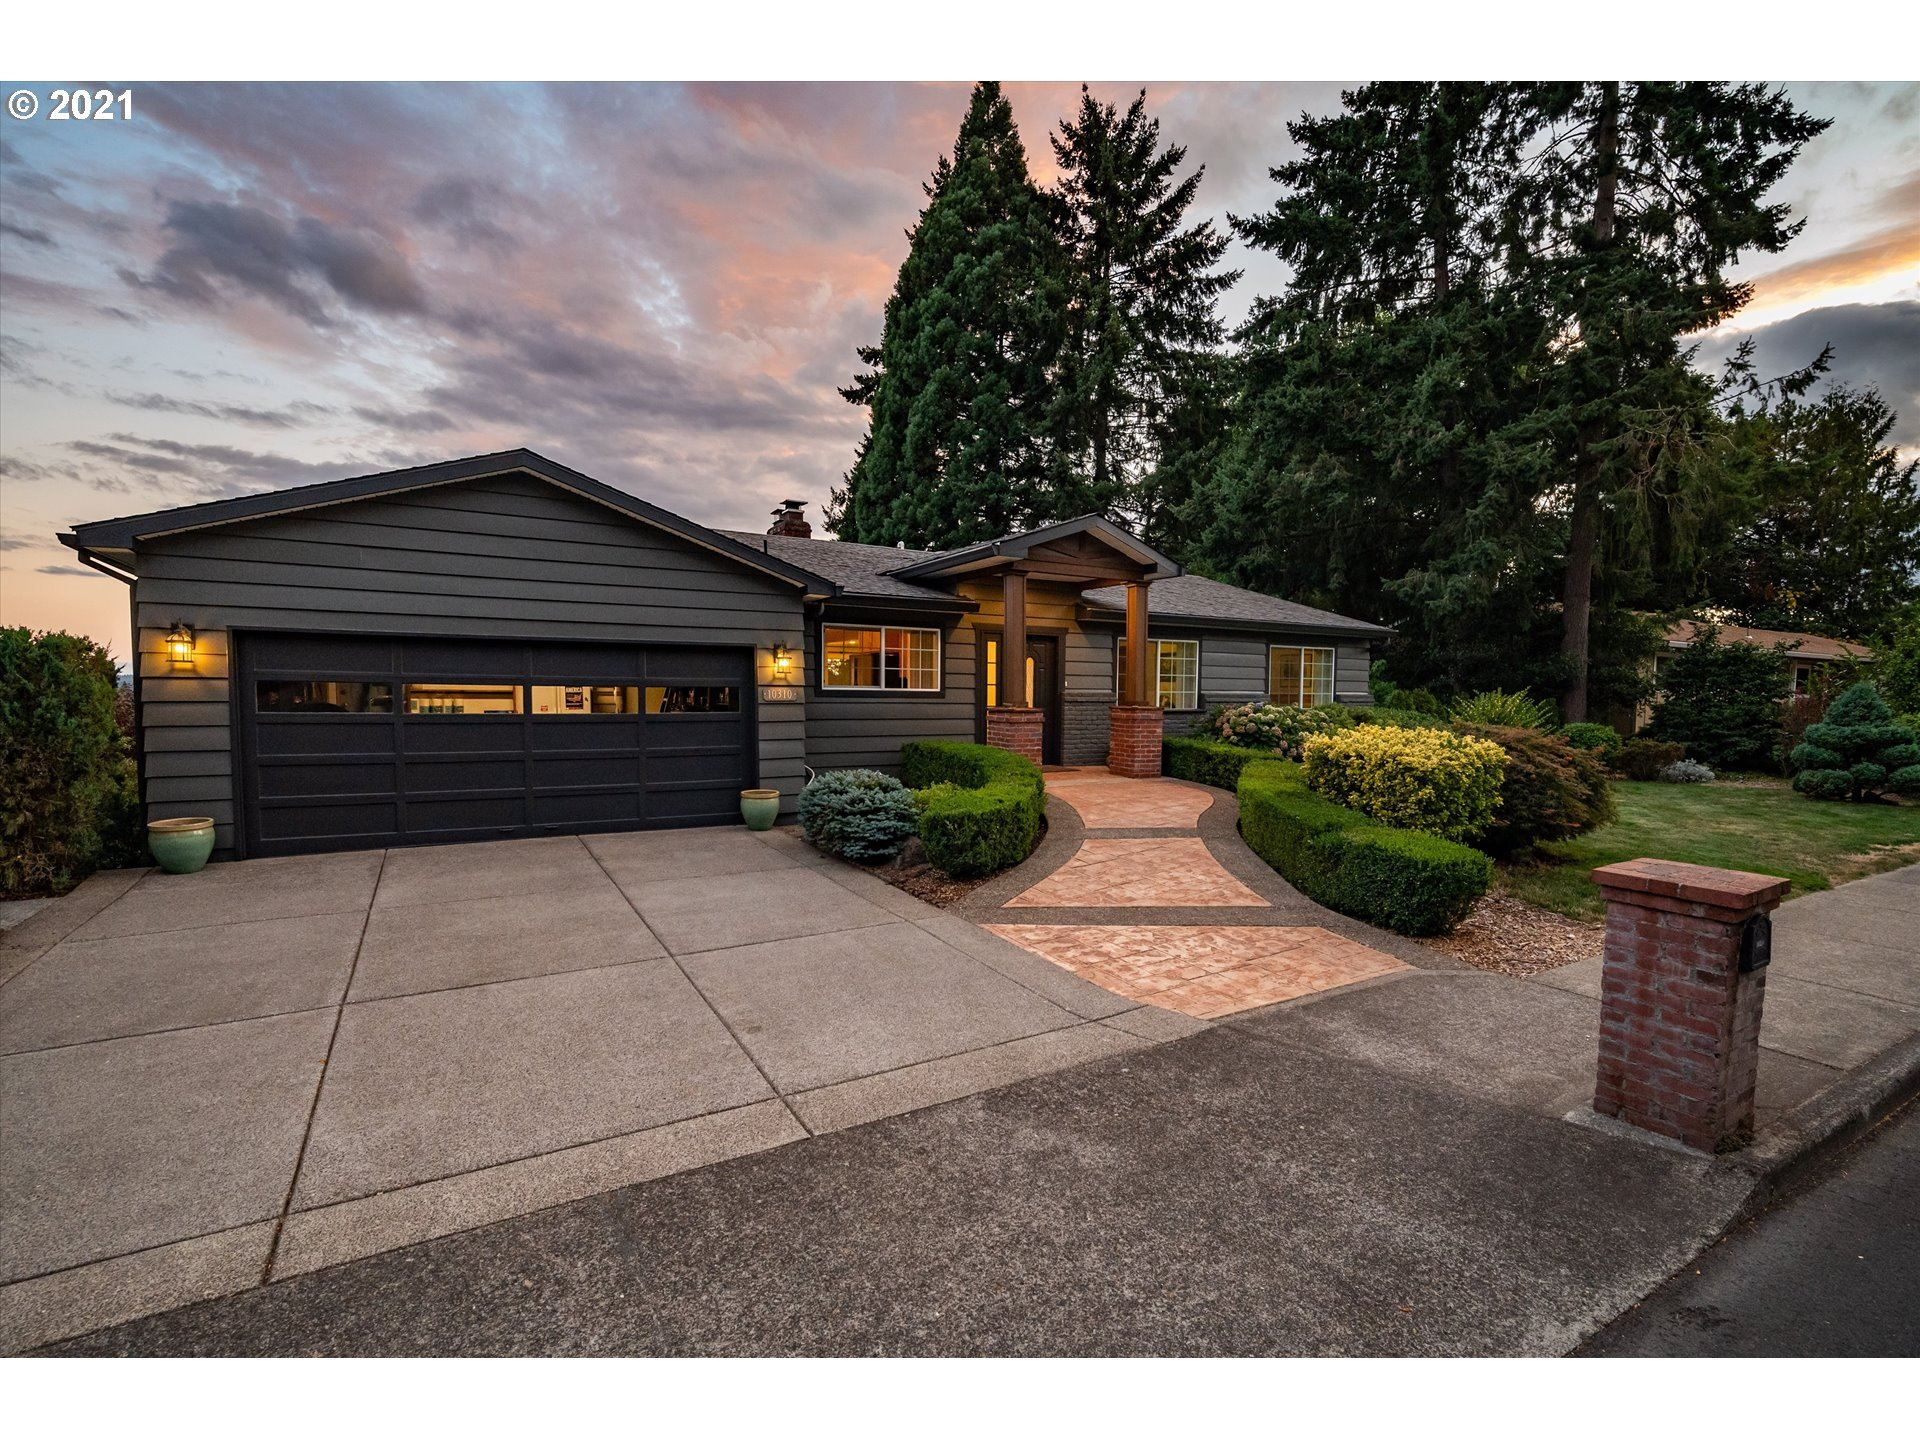 10310 SW KABLE ST, Tigard, OR 97224 - MLS#: 21064152